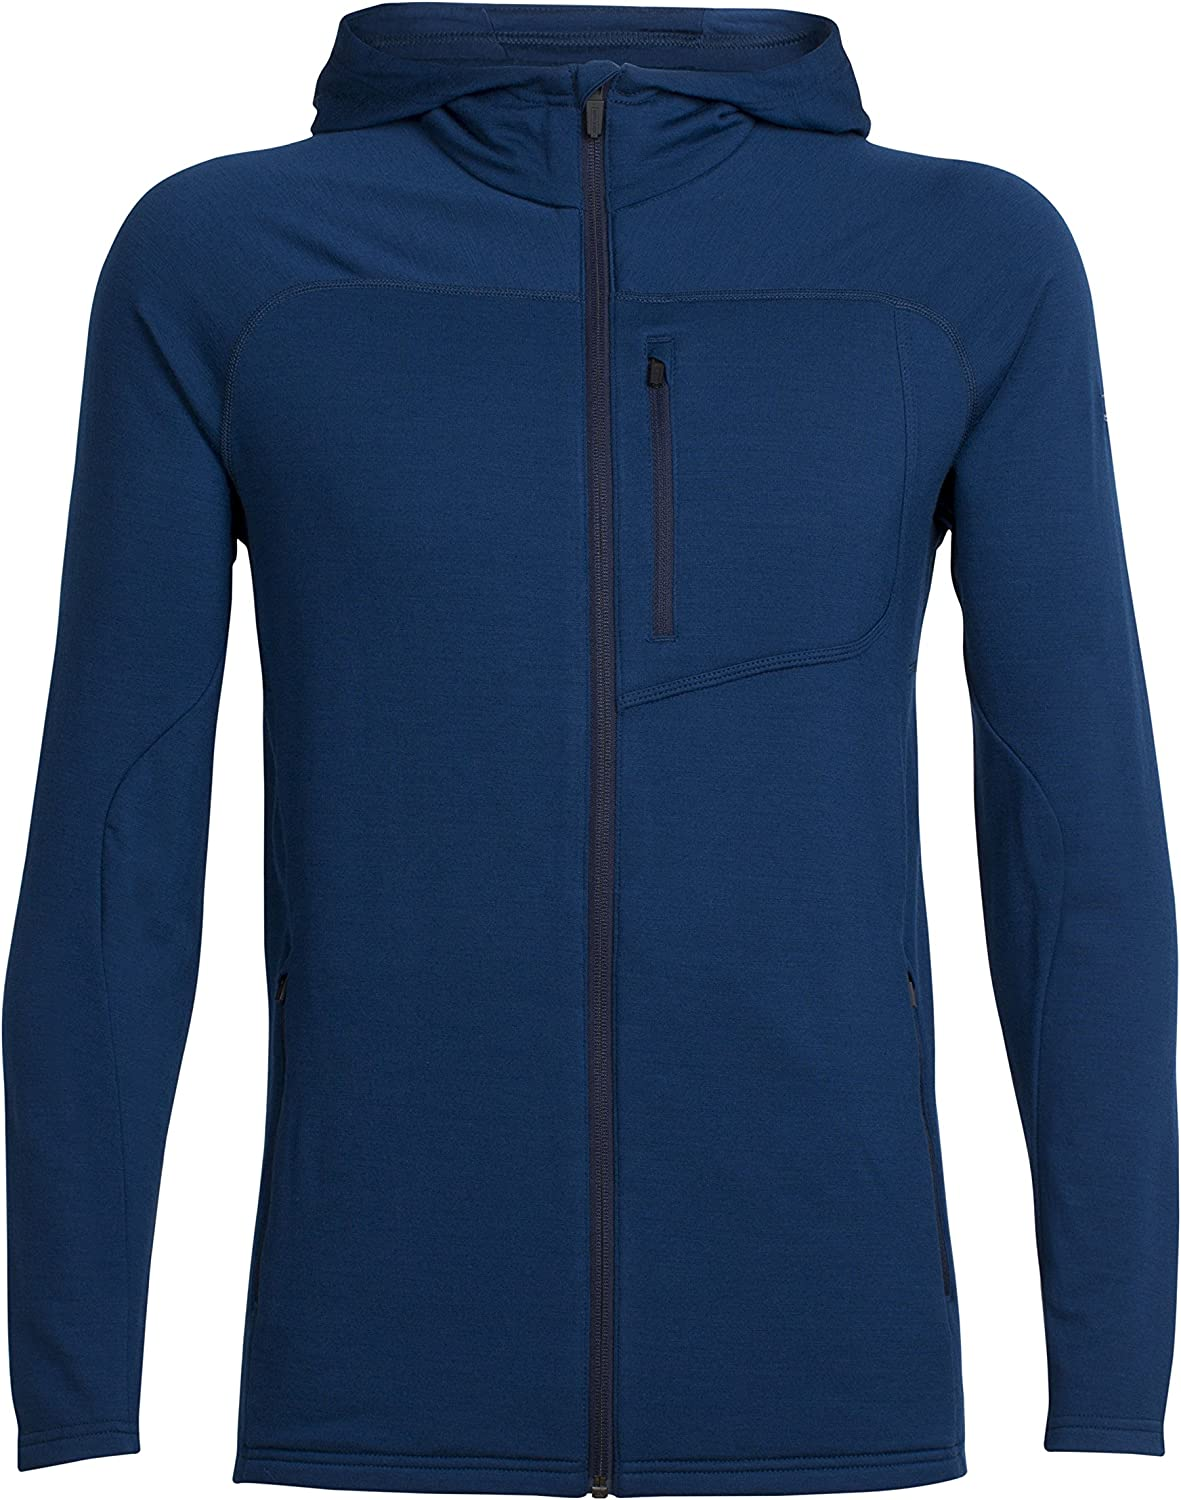 Icebreaker 103453 Mens Mt Elliot LS Zip